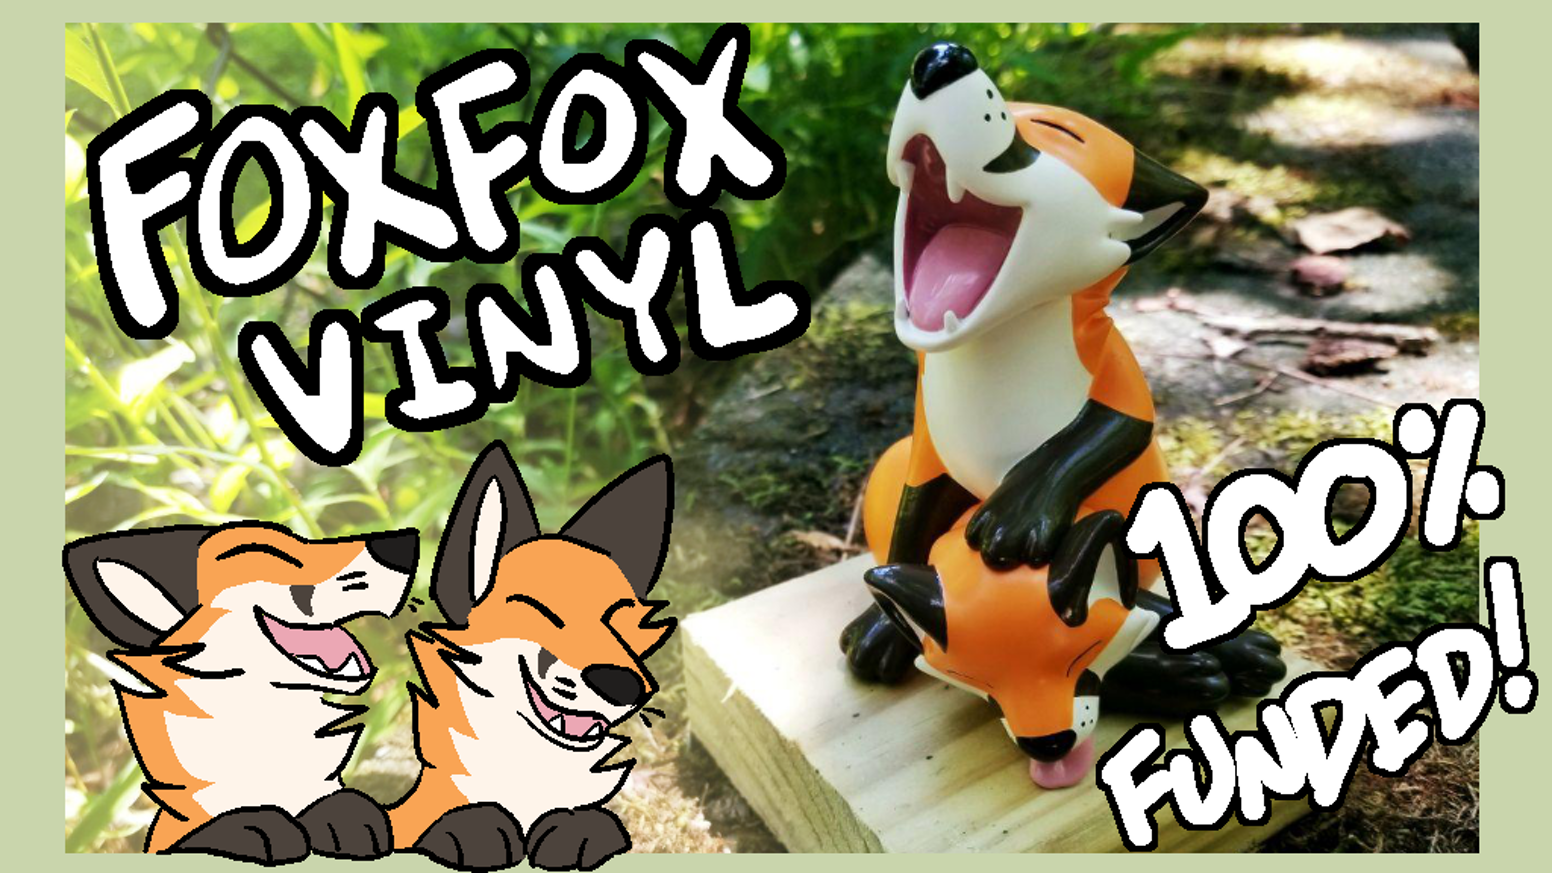 A soft vinyl designer toy of a two-headed fox